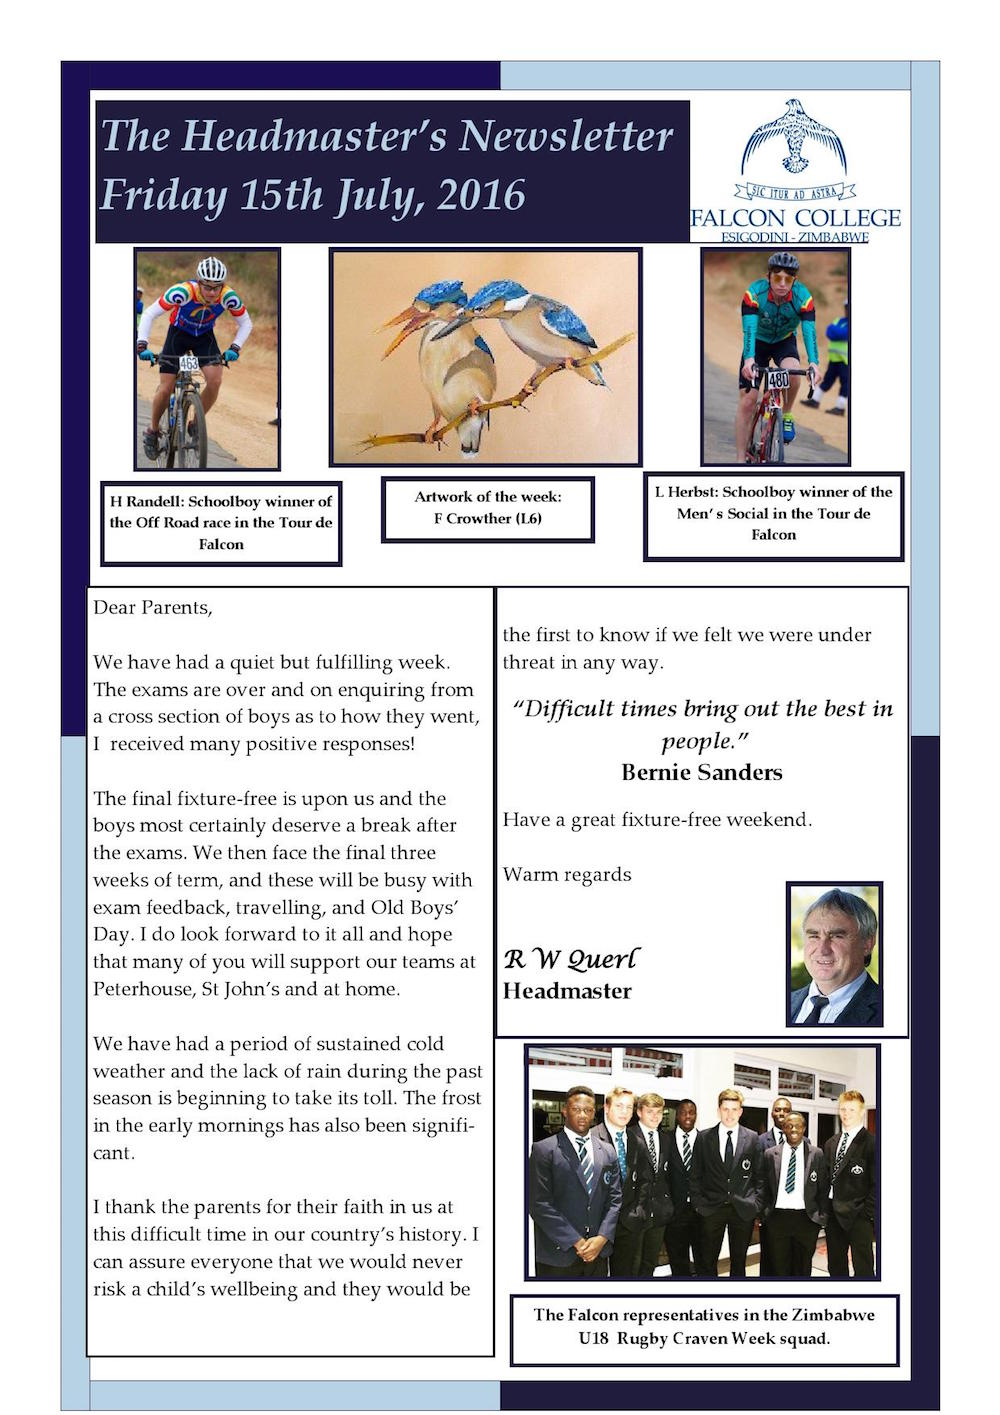 Headmaster's Newsletter Friday 15th July 2016 edited_000001